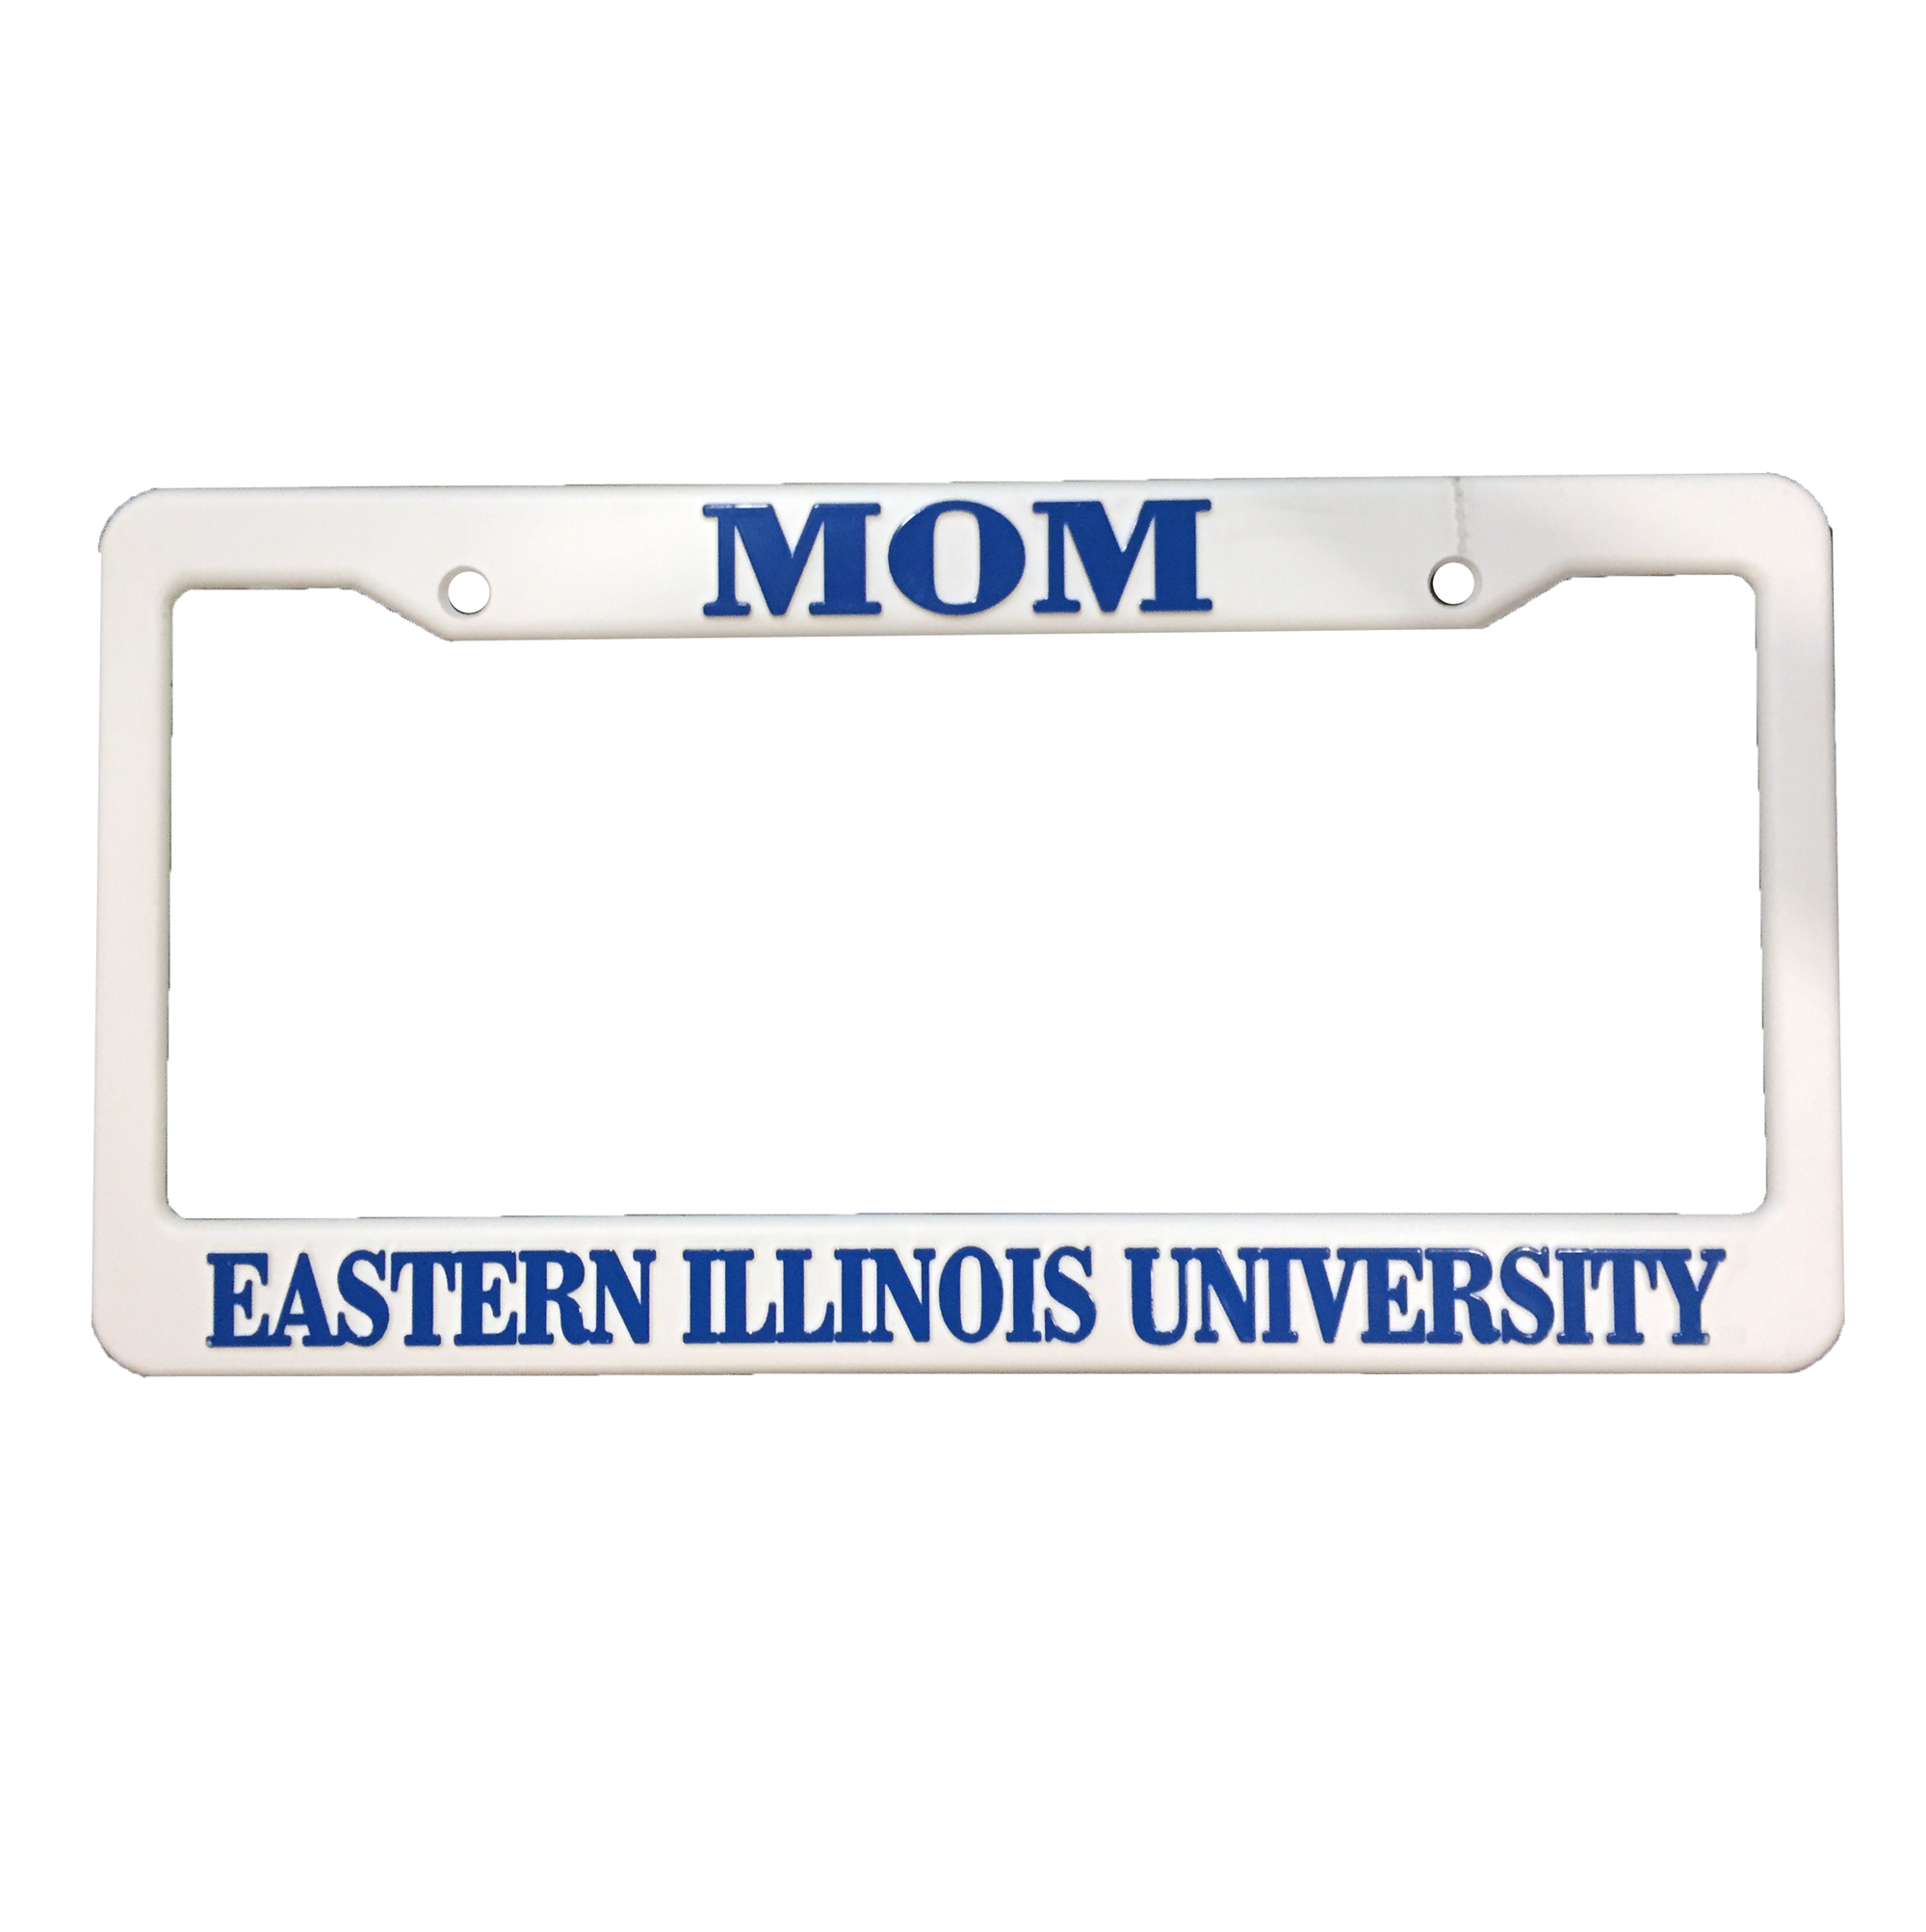 LICENSE MOM E/I/U PLASTIC